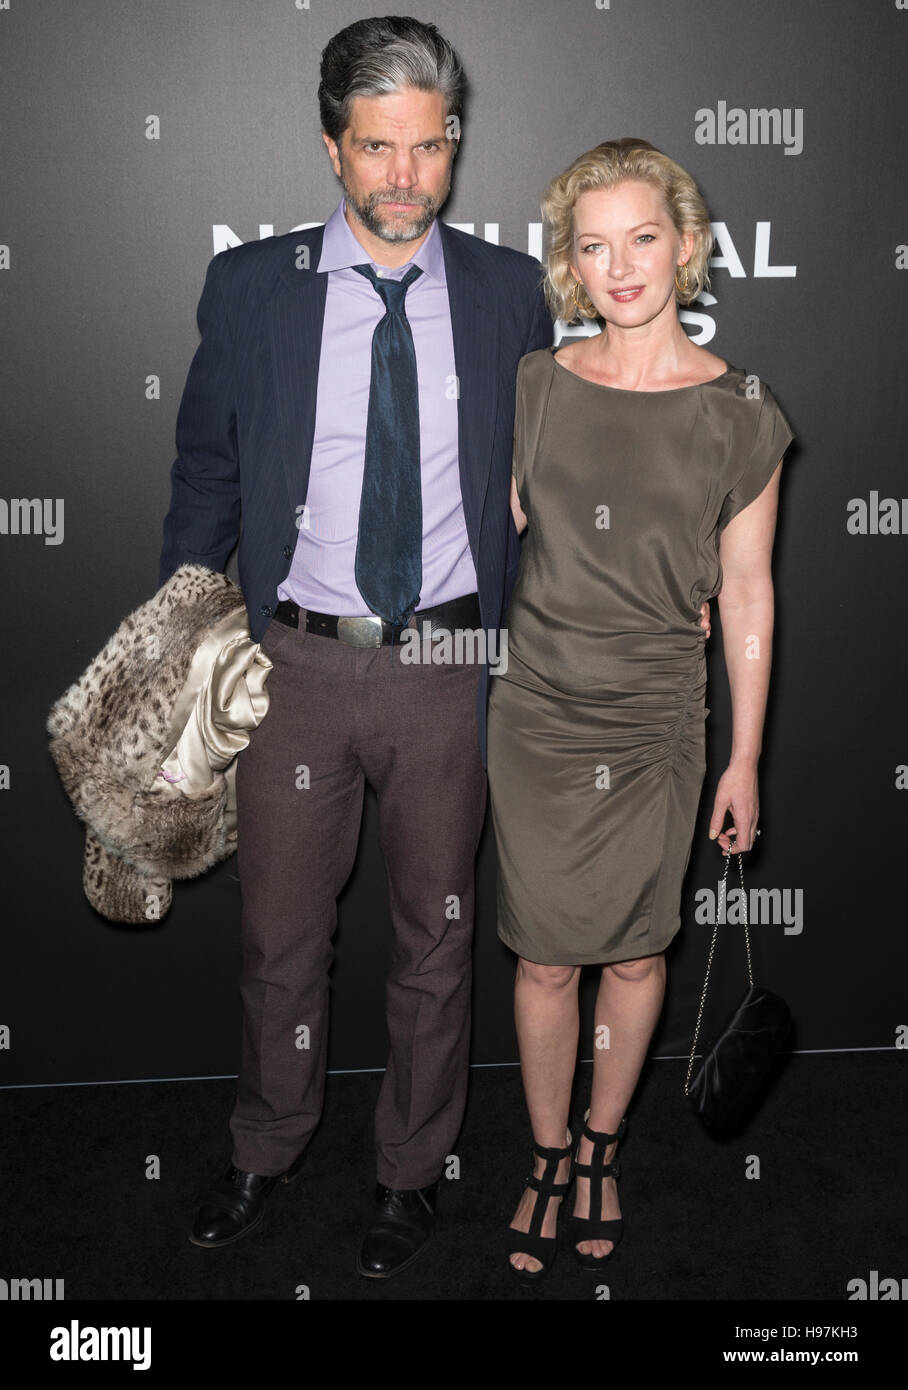 New York City, USA - November 17, 2016: Tod Williams and actress Gretchen Mol attend the 'Nocturnal Animals' - Stock Image